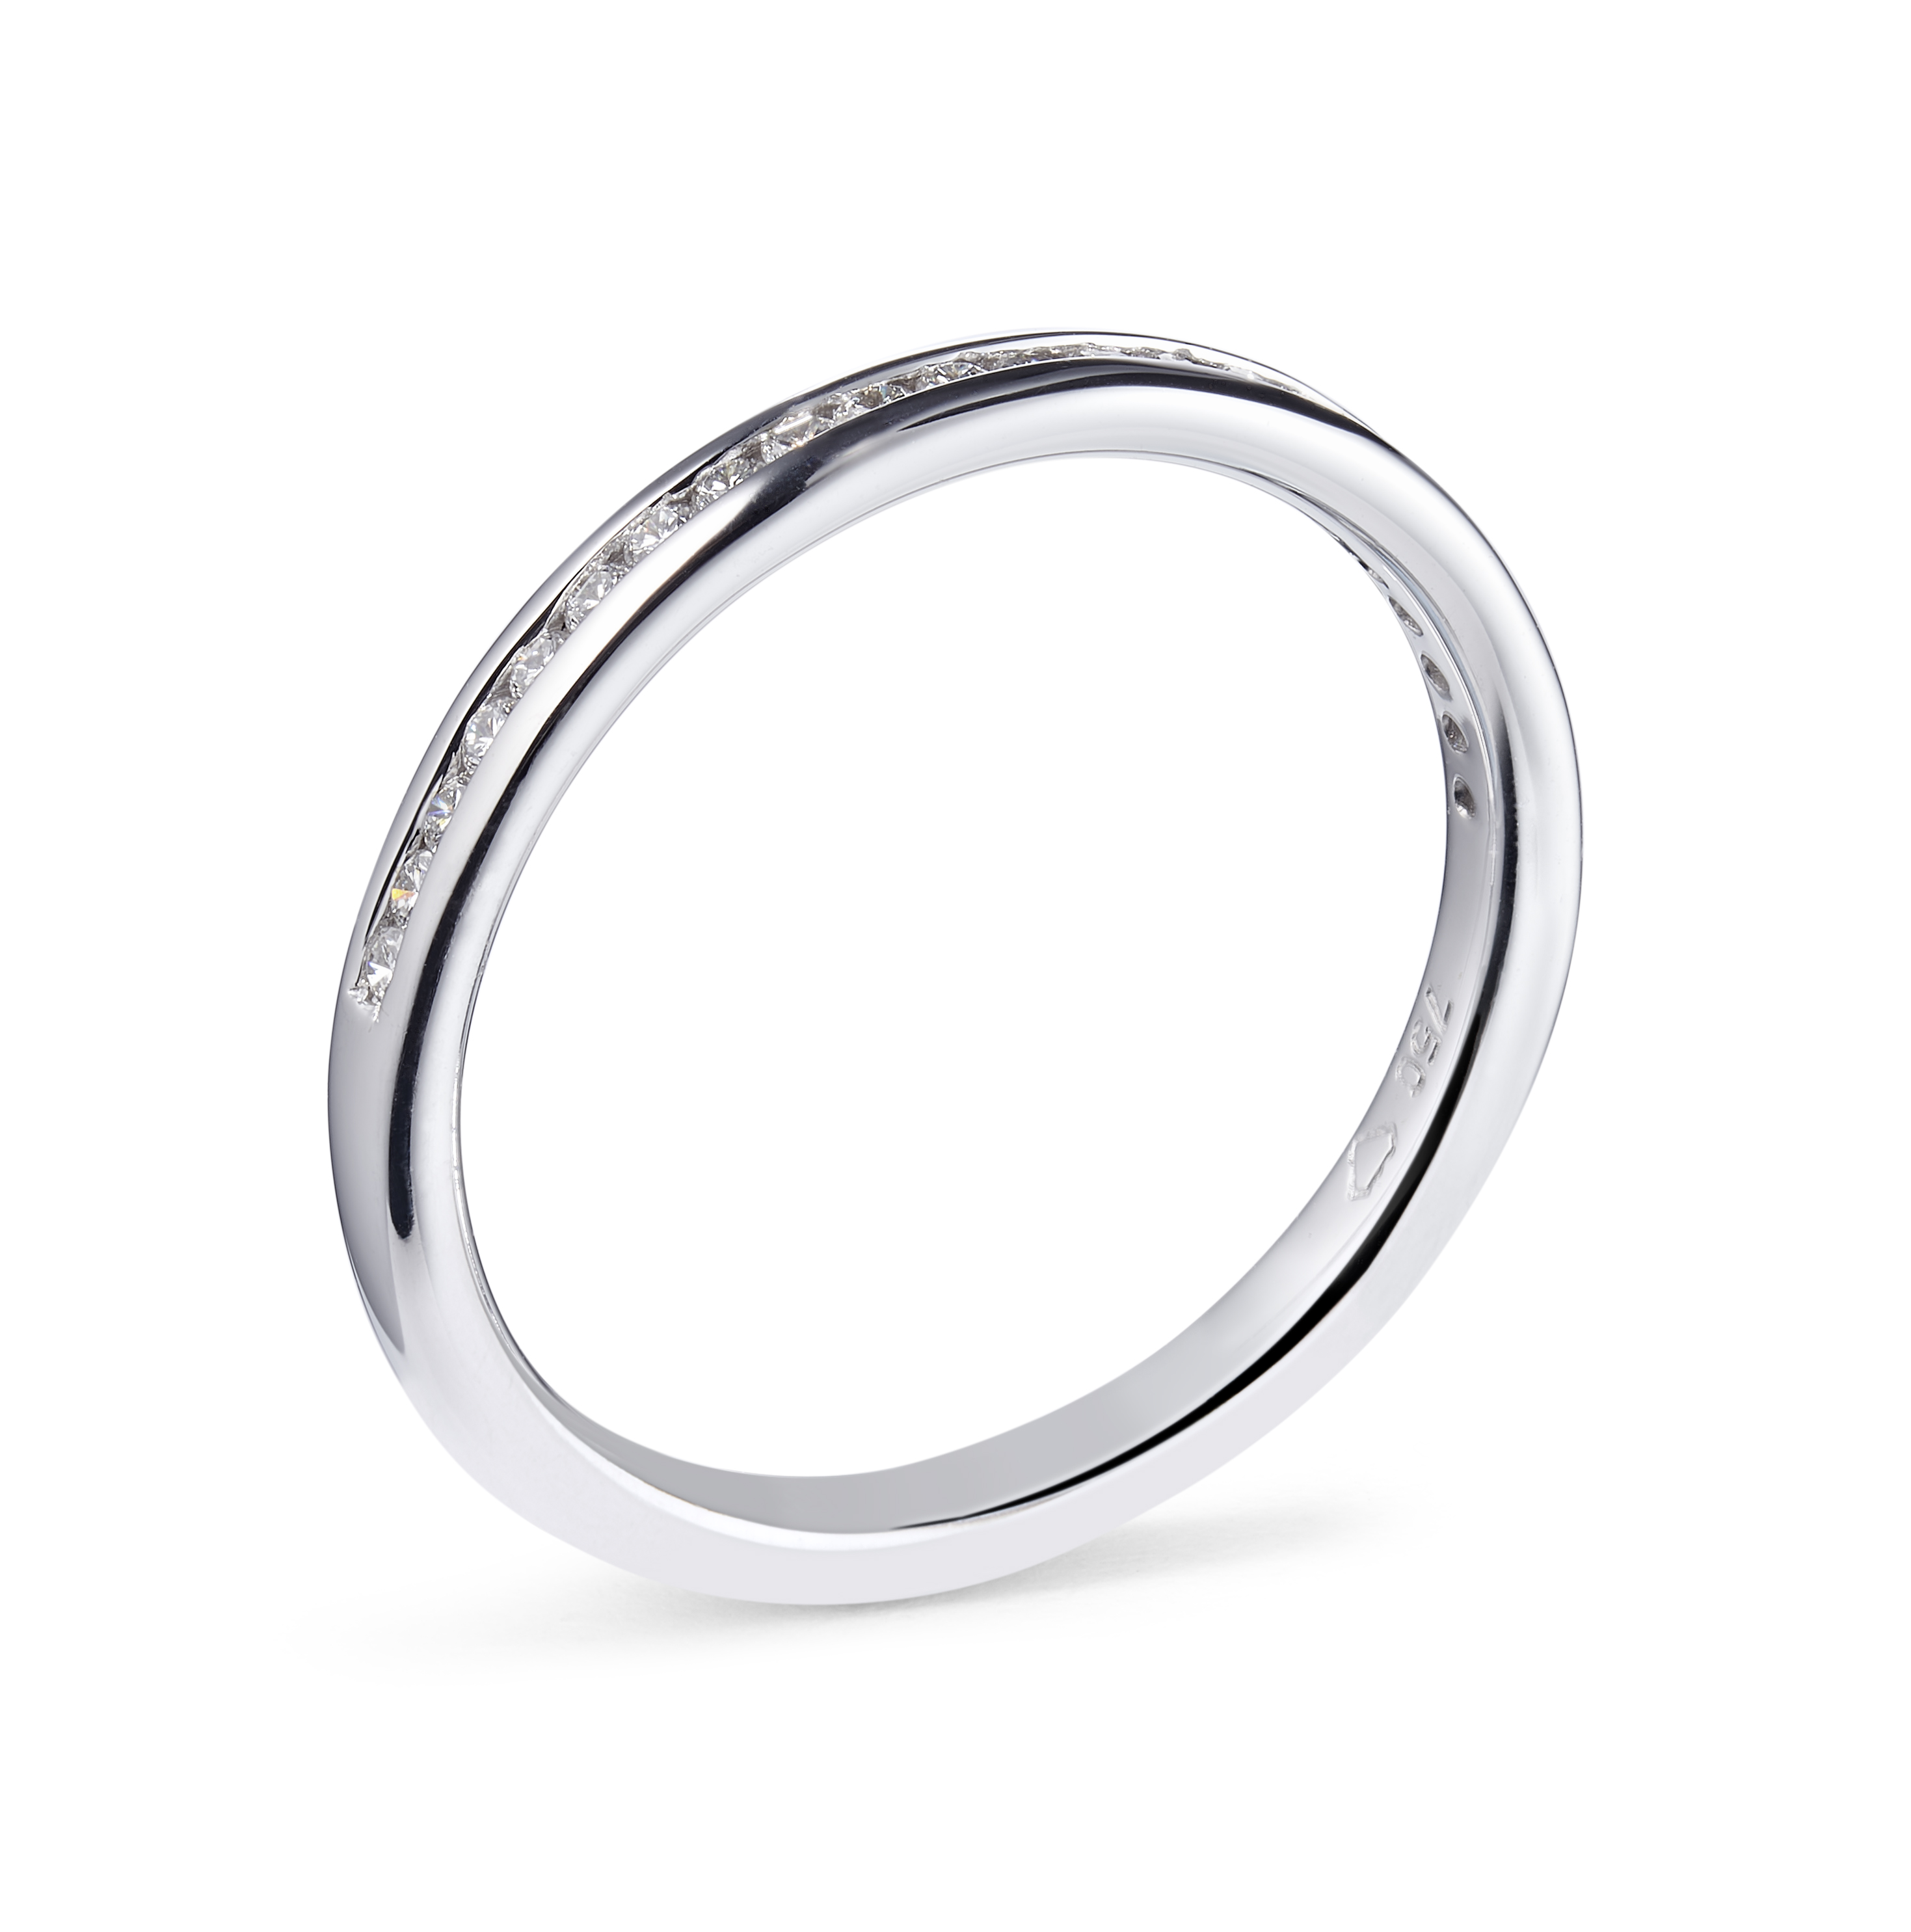 0.19ct 18ct White Gold Channel Set Ring – Size N